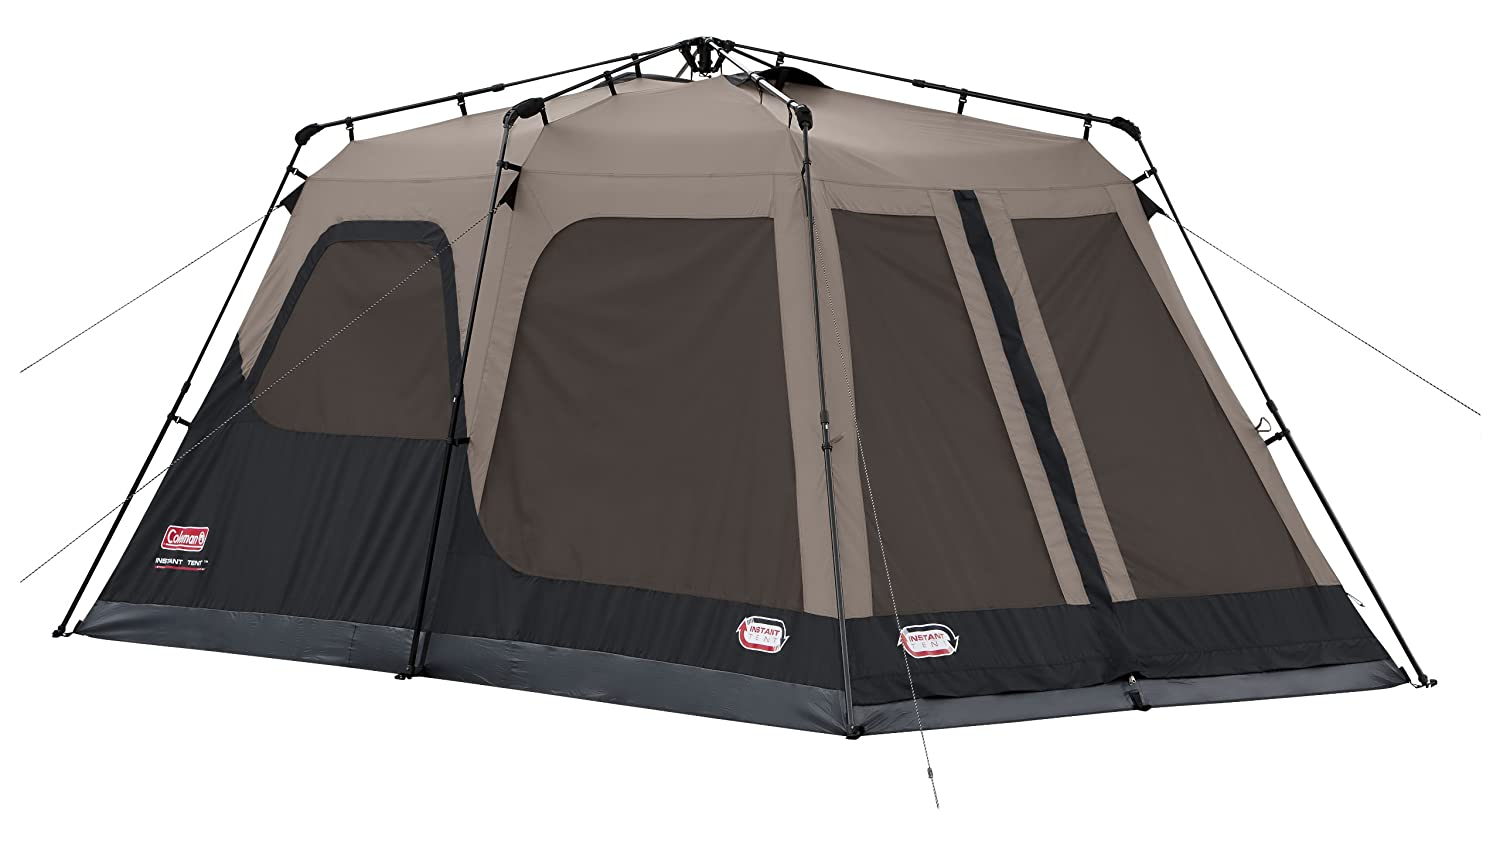 Coleman 14x8 Foot 8 Person Instant Tent at Sears.com